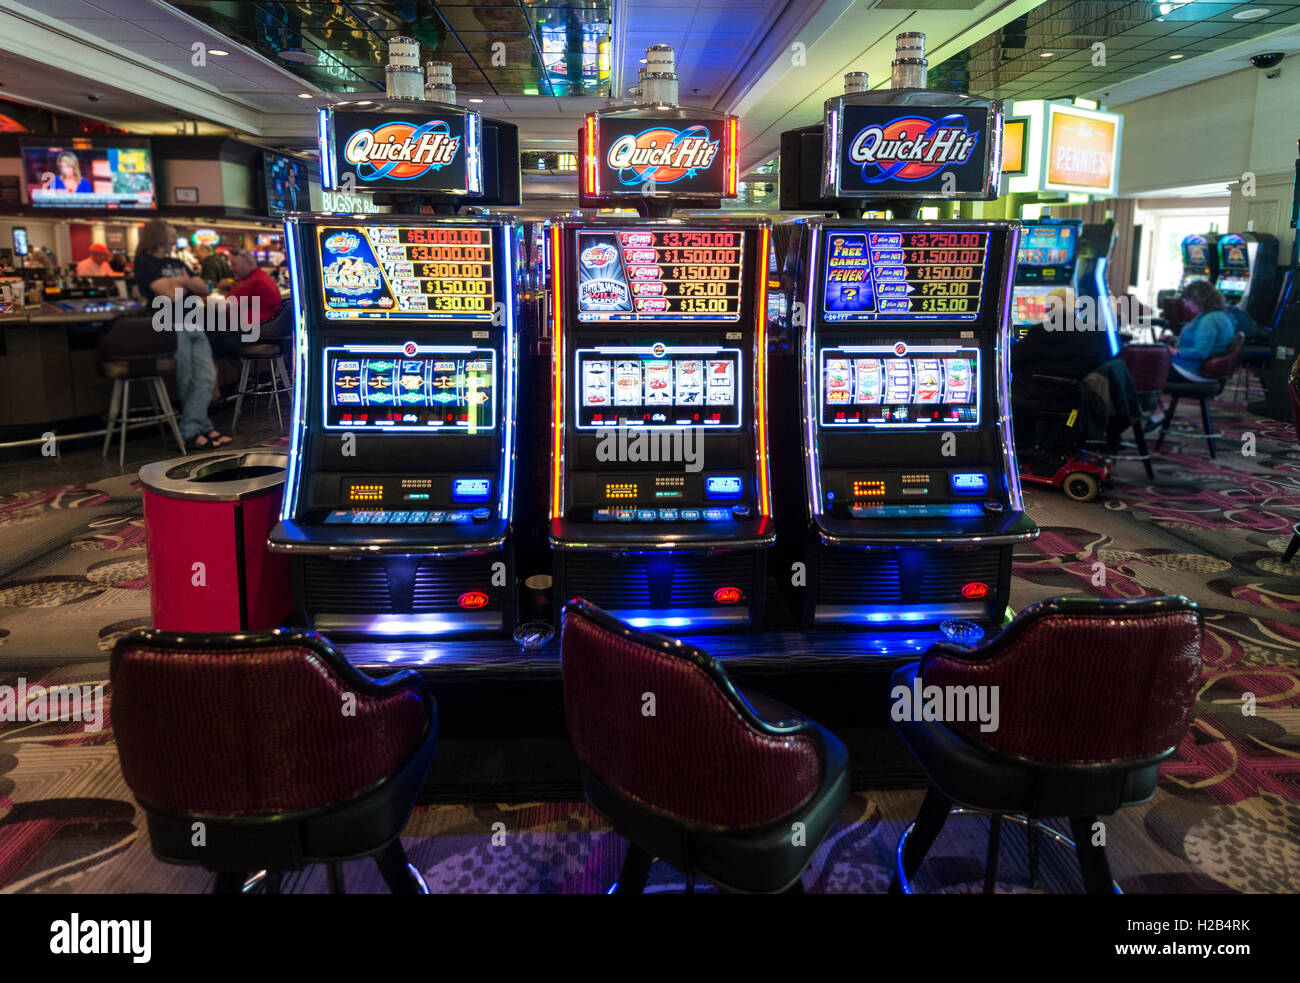 Emplacements, solution rapide au casino, Las Vegas, Nevada, USA Photo Stock